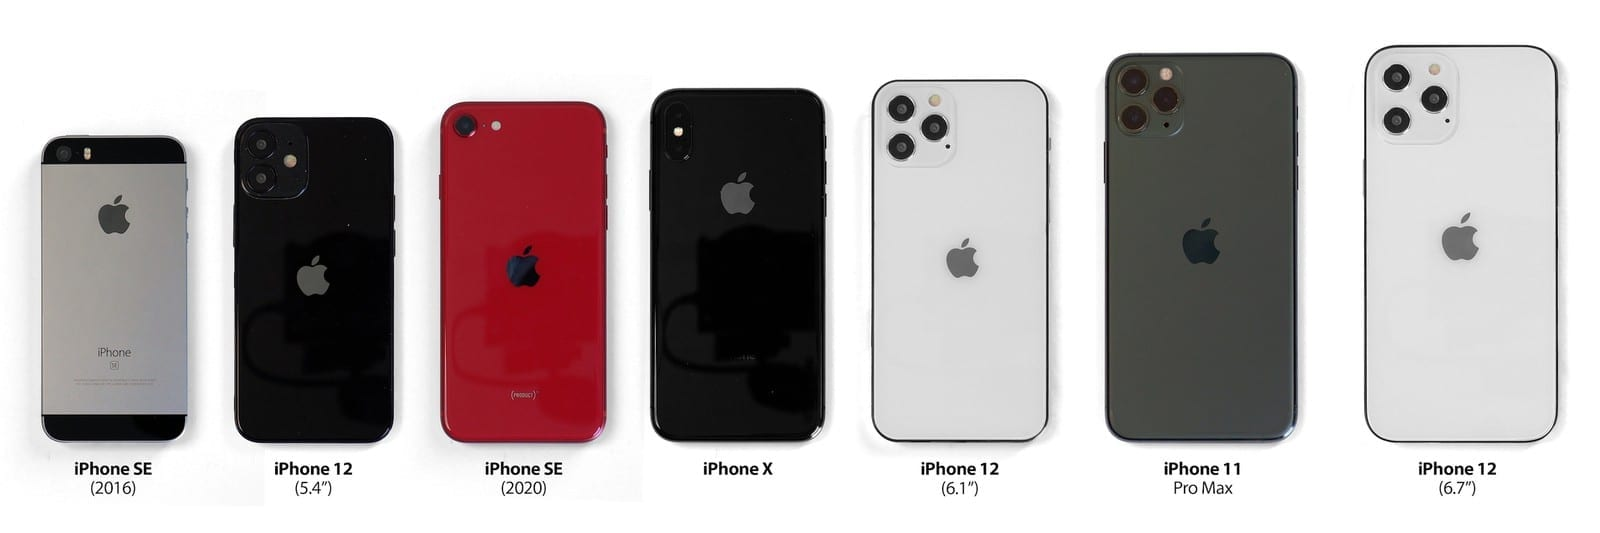 apple iphone 12 Lineup